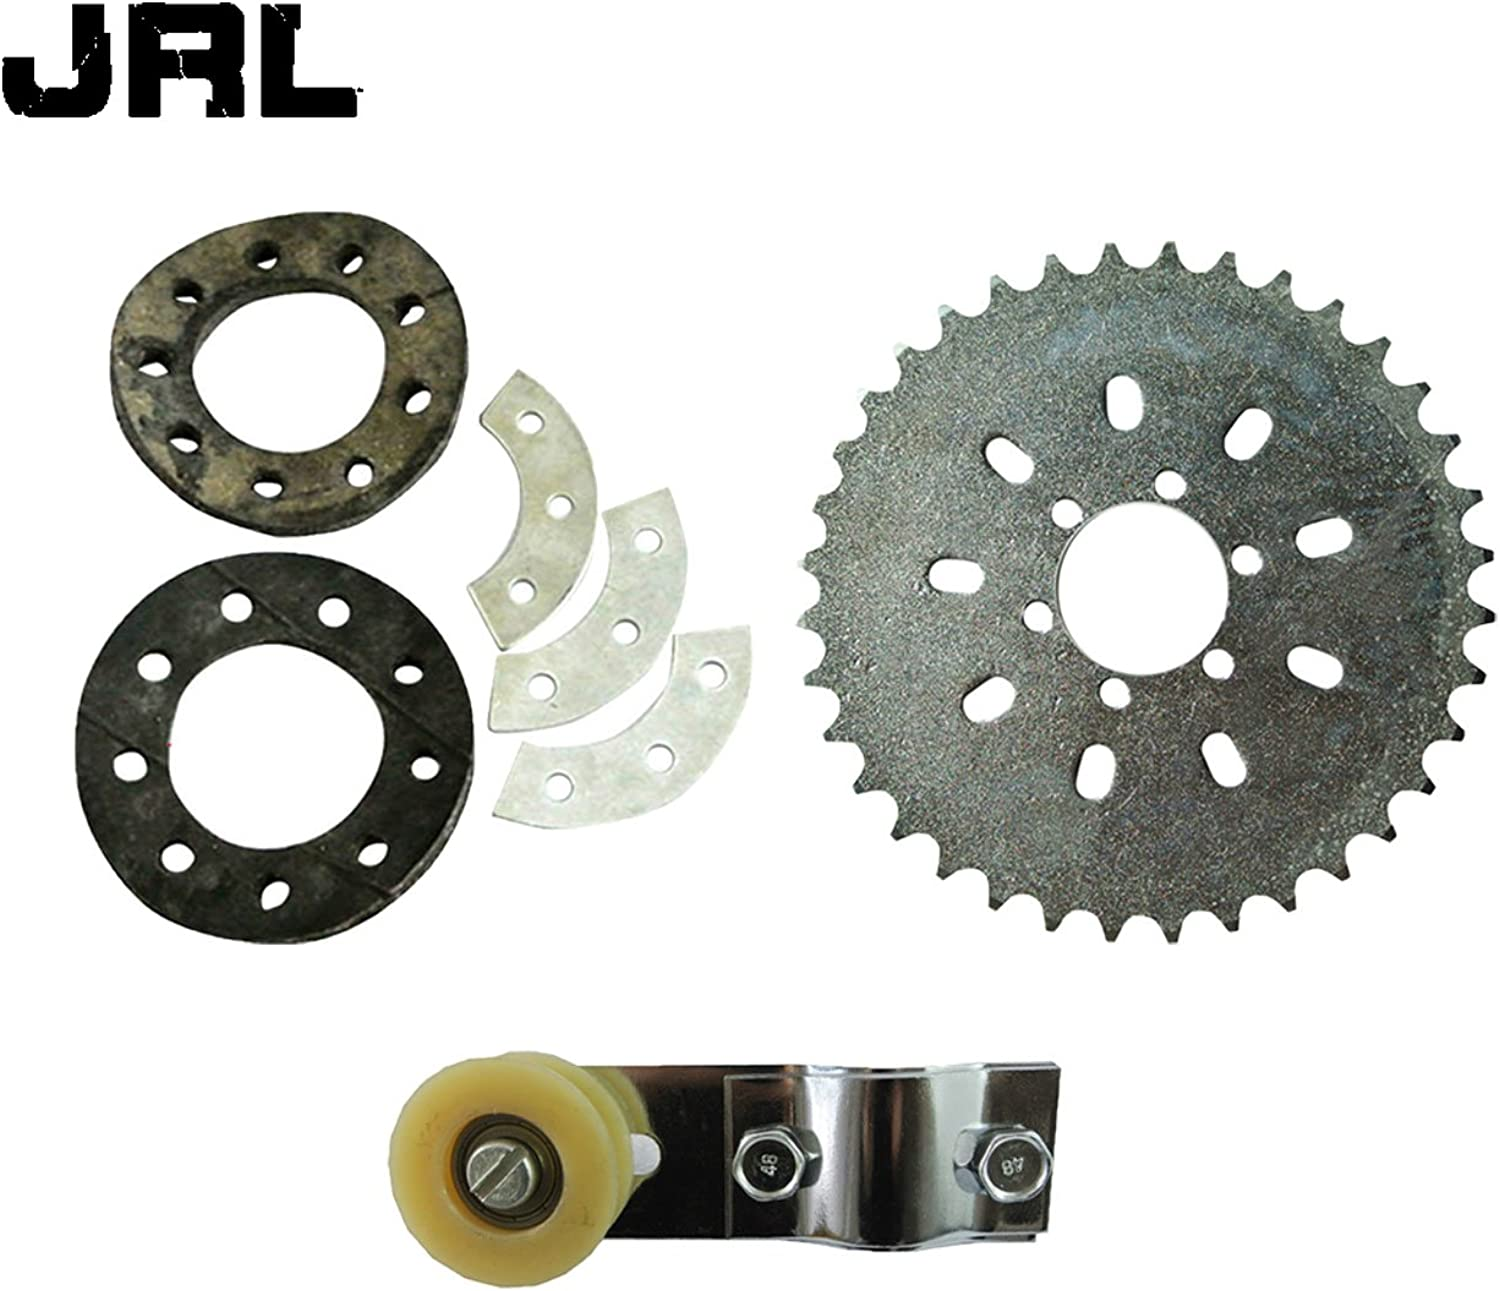 JRL 6 Holes 36 Teeth Sprocket&Chain Tensioner For 66cc 80cc Engine Motorized Bicycle